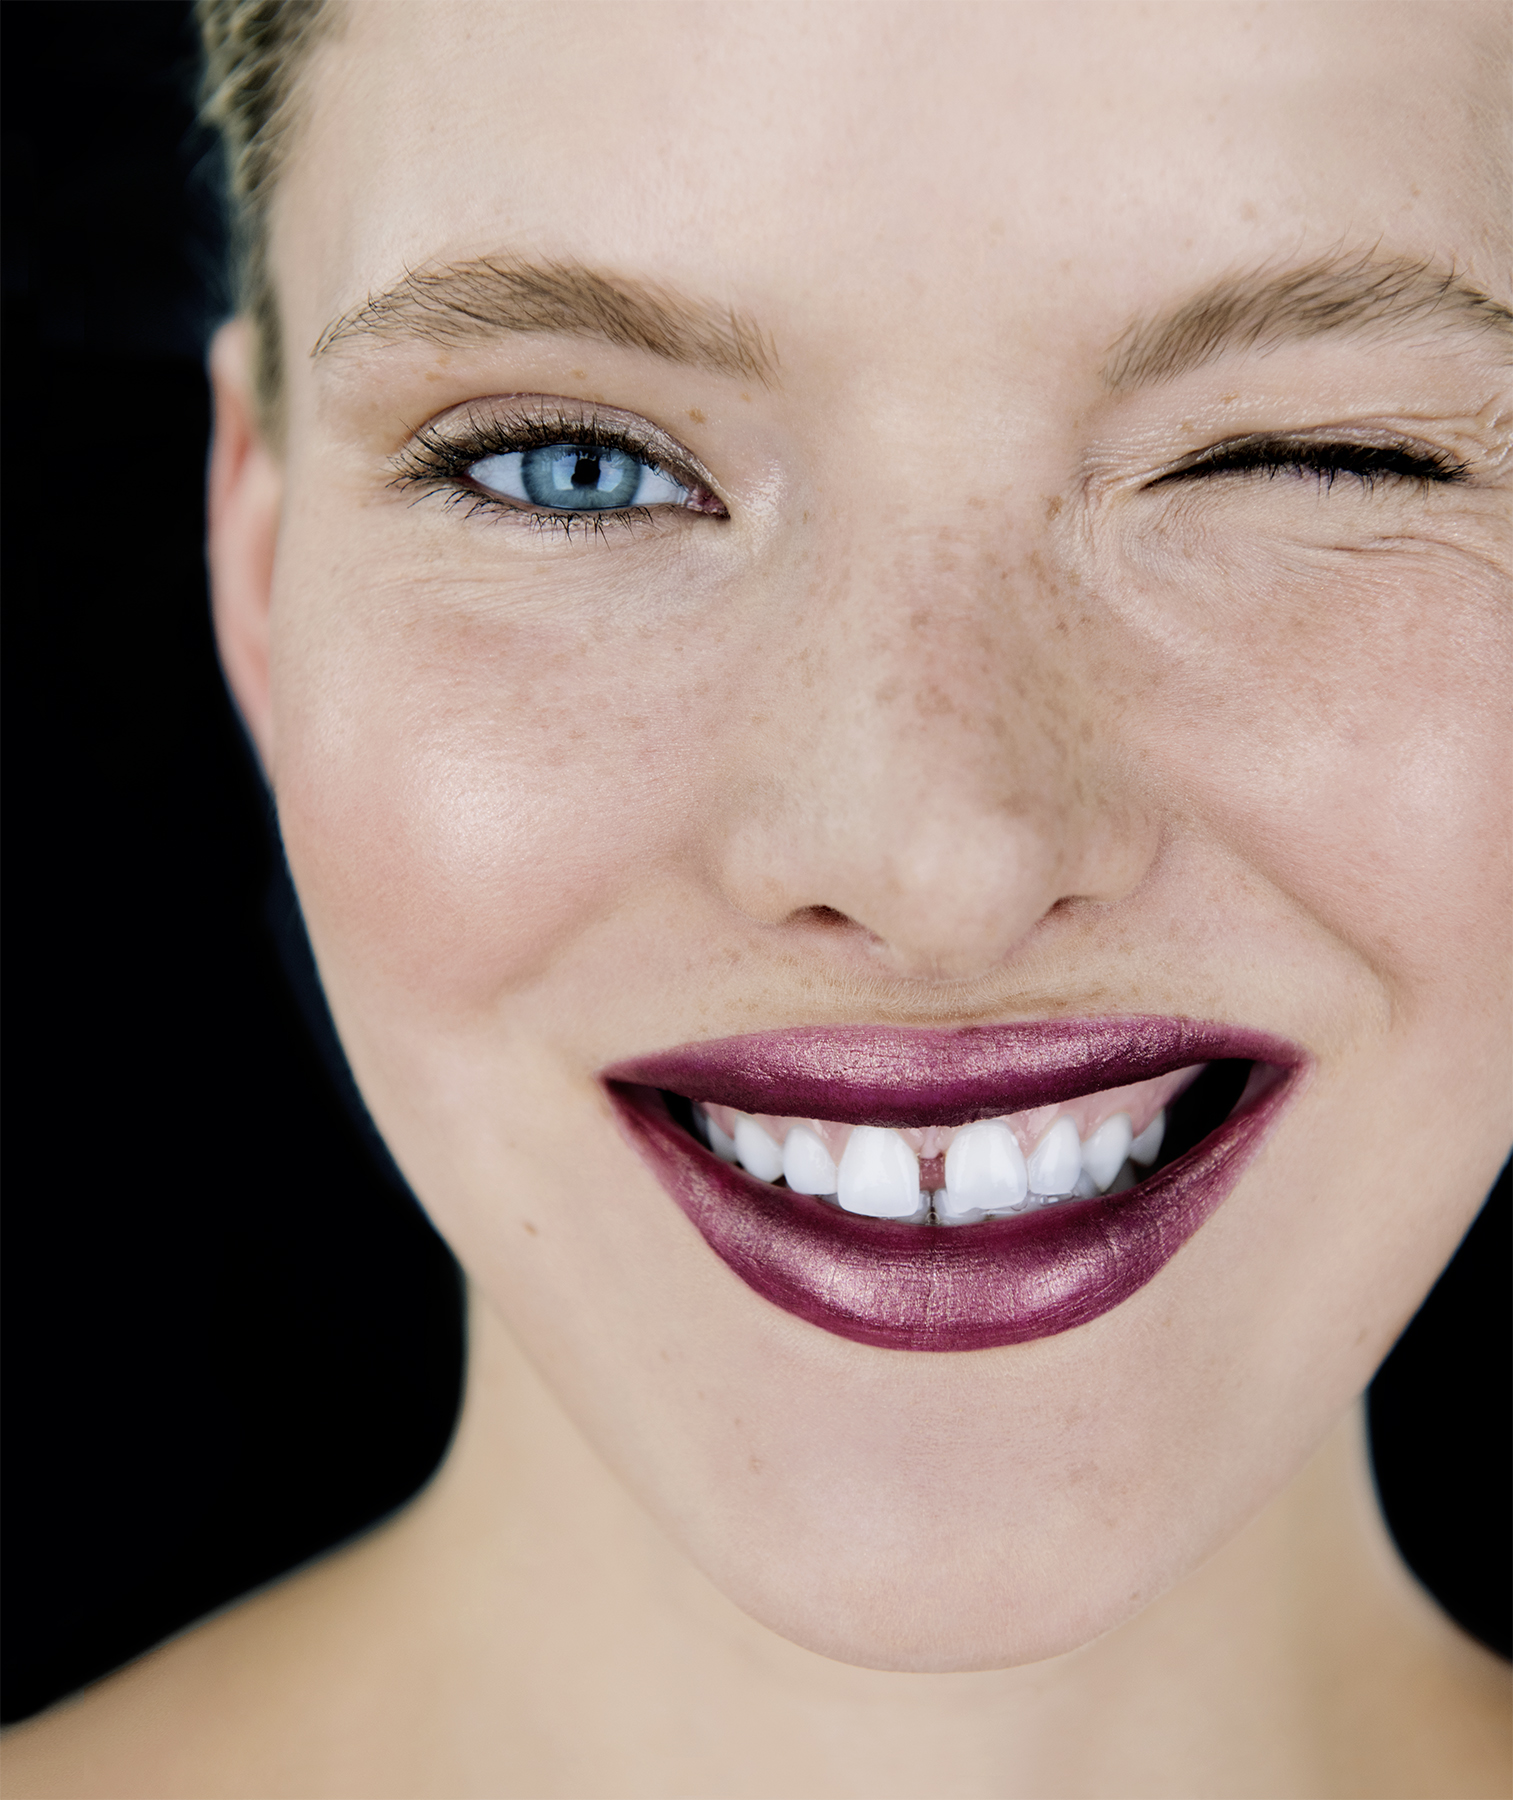 Model with pinkish plum metallic lipstick